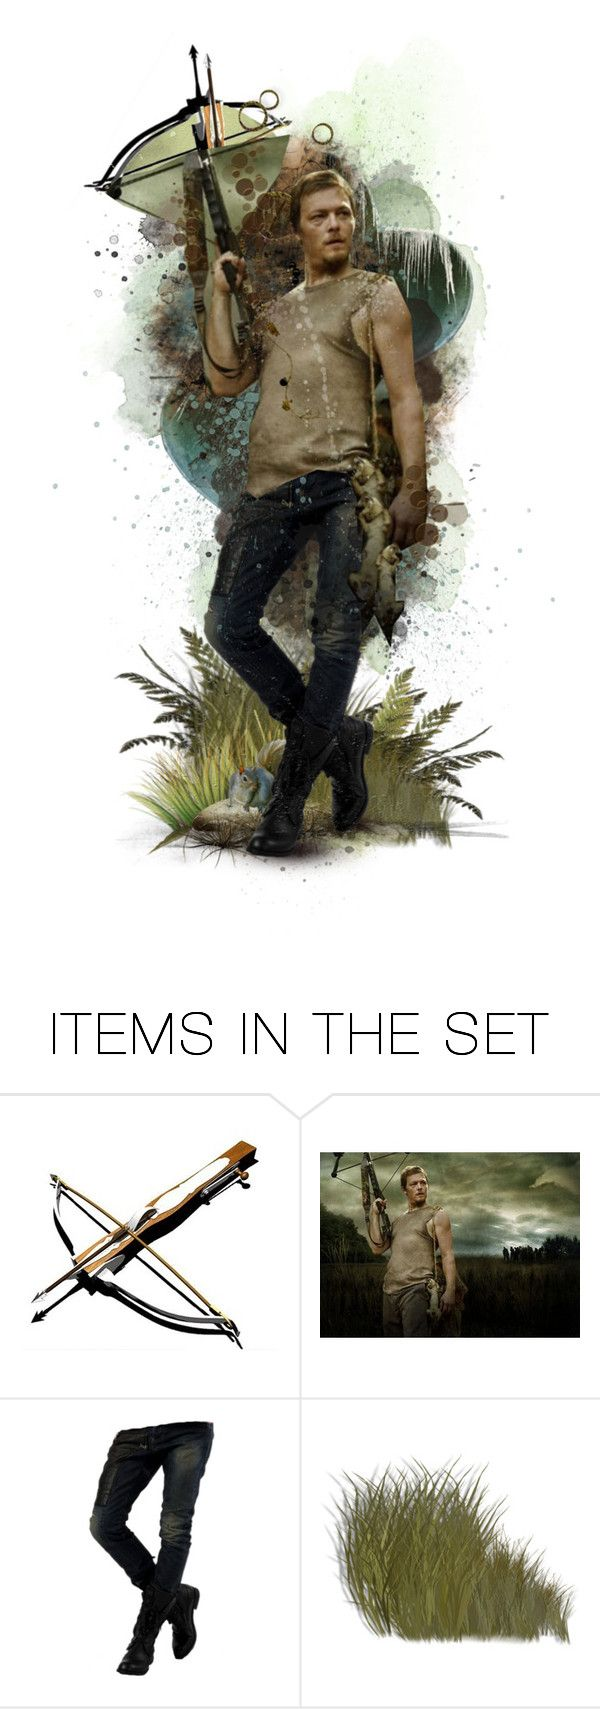 """""""keep calm and hide behind daryl dixon"""" by crazyfish ❤ liked on Polyvore featuring art, zombies, crossbow, daryl dixon, squirrels, paper doll, the walking dead and horror"""